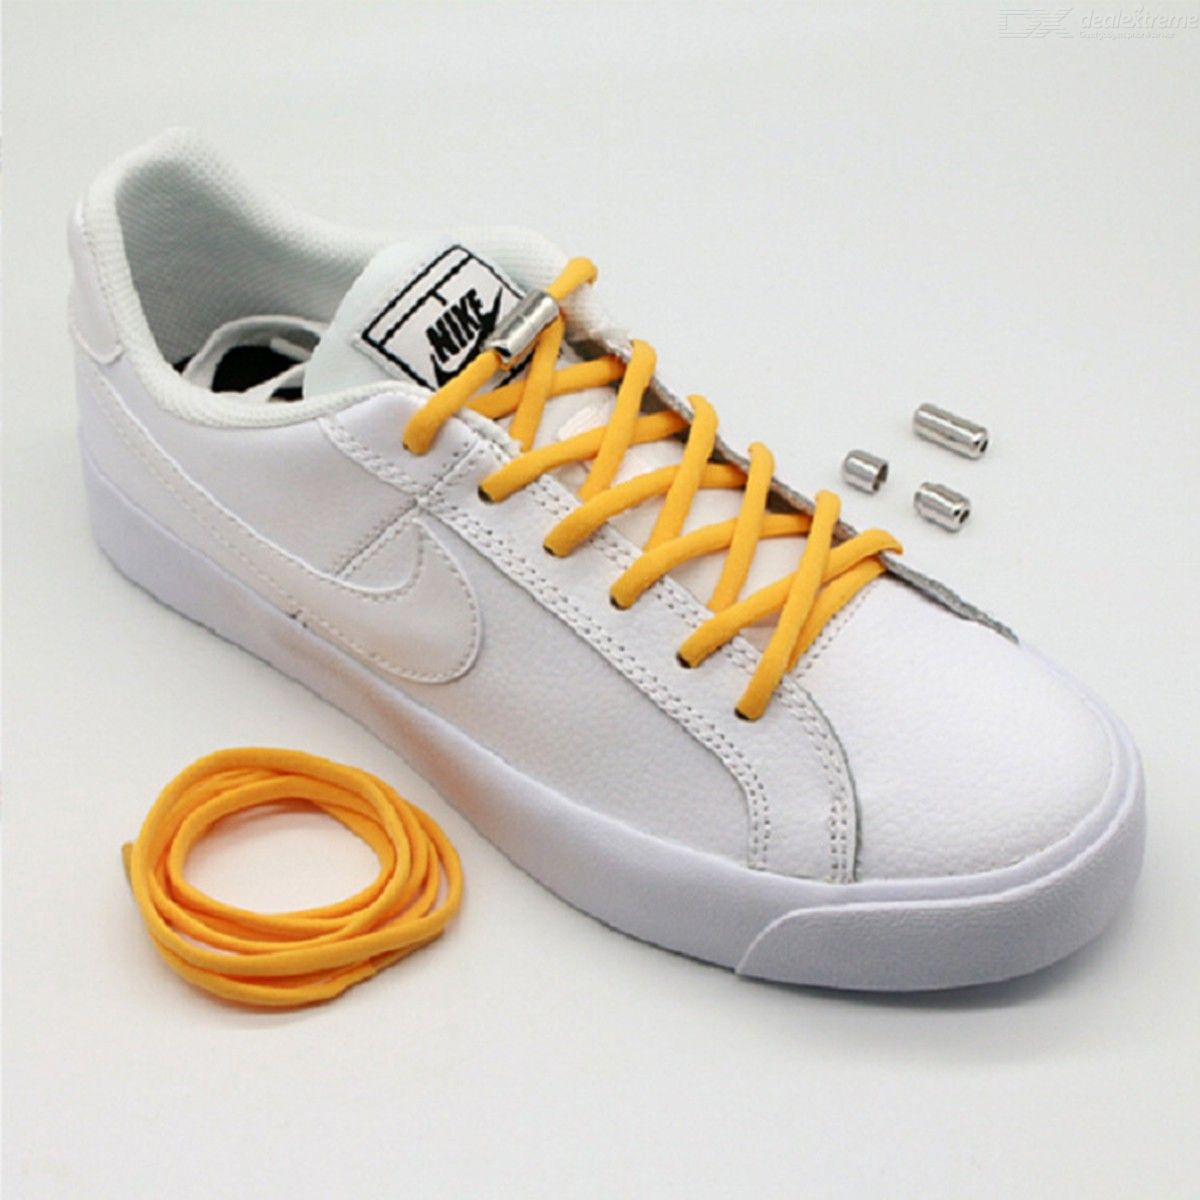 1 Pair No Tie Shoelaces Round Elastic Shoe Laces For Kids Adults Sneakers 11 Col